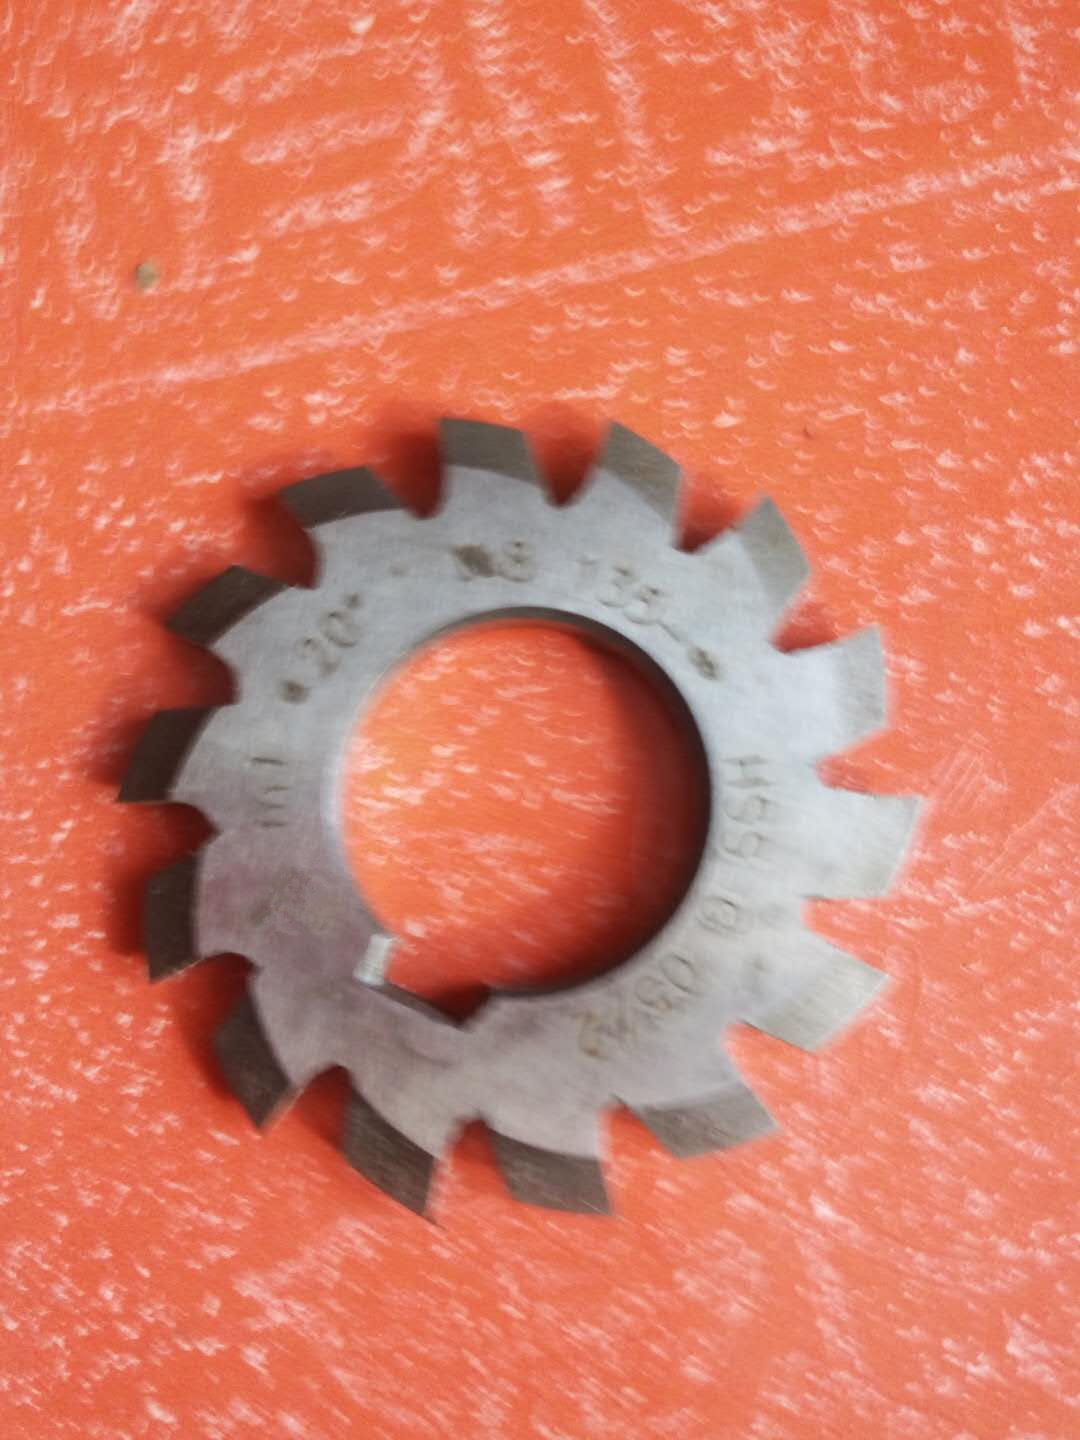 купить Set 8Pcs Module 1 PA20 Bore22 1#2#3#4#5#6#7#8# Involute Gear Cutters M1 онлайн